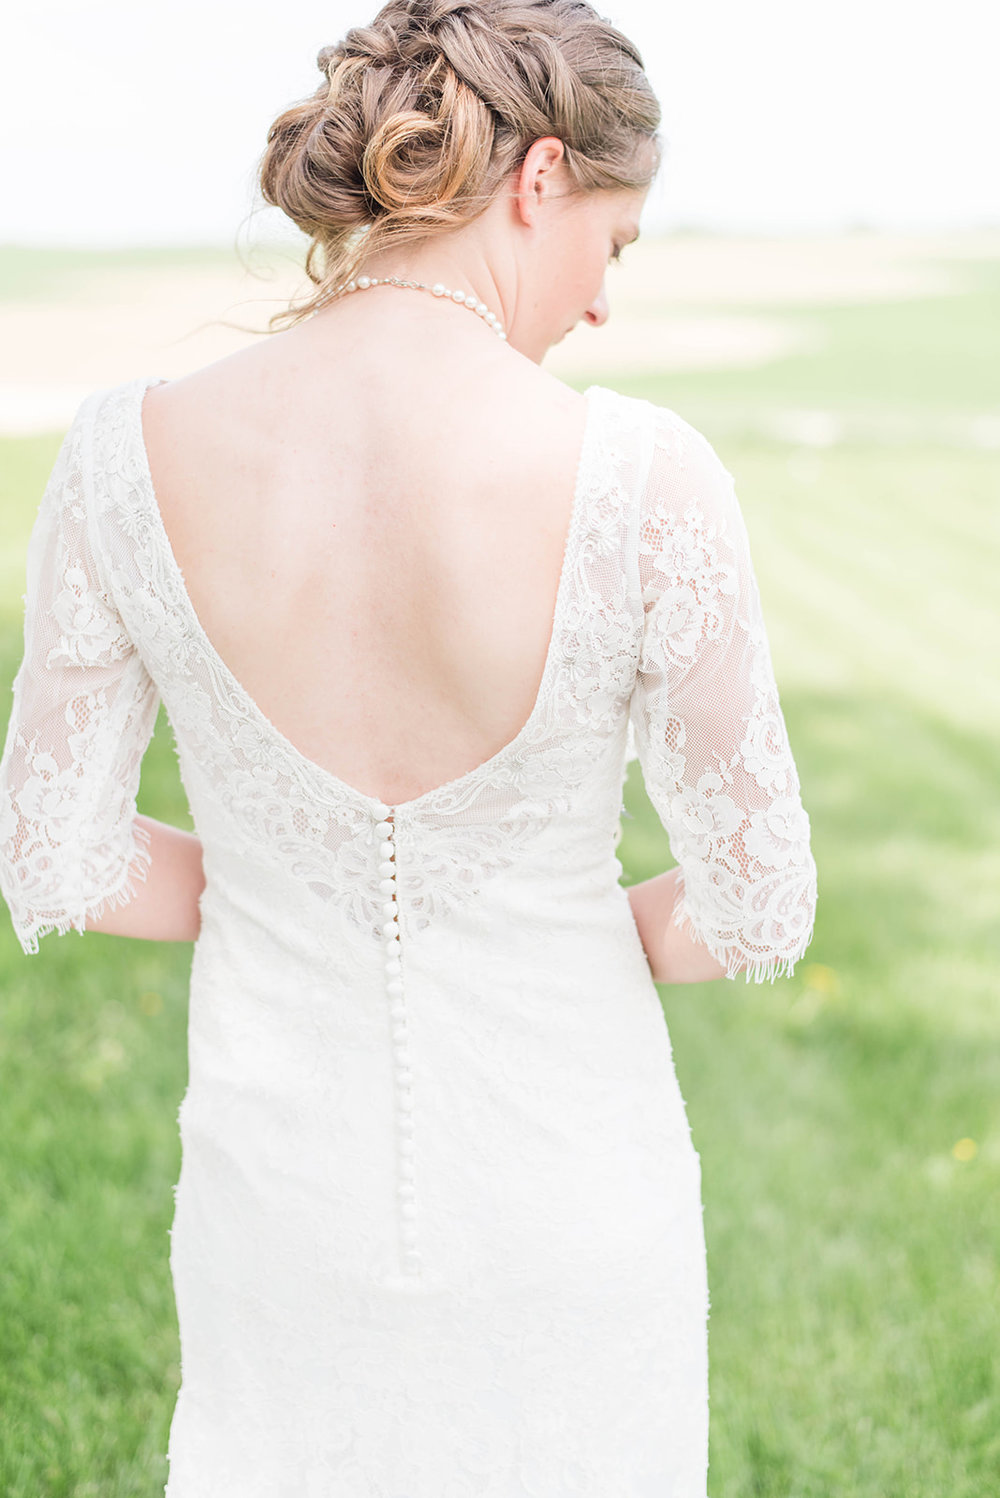 A Coffee Mill Ski Area Outdoor Summer Minnesota Wedding - The Overwhelmed Bride Wedding Blog